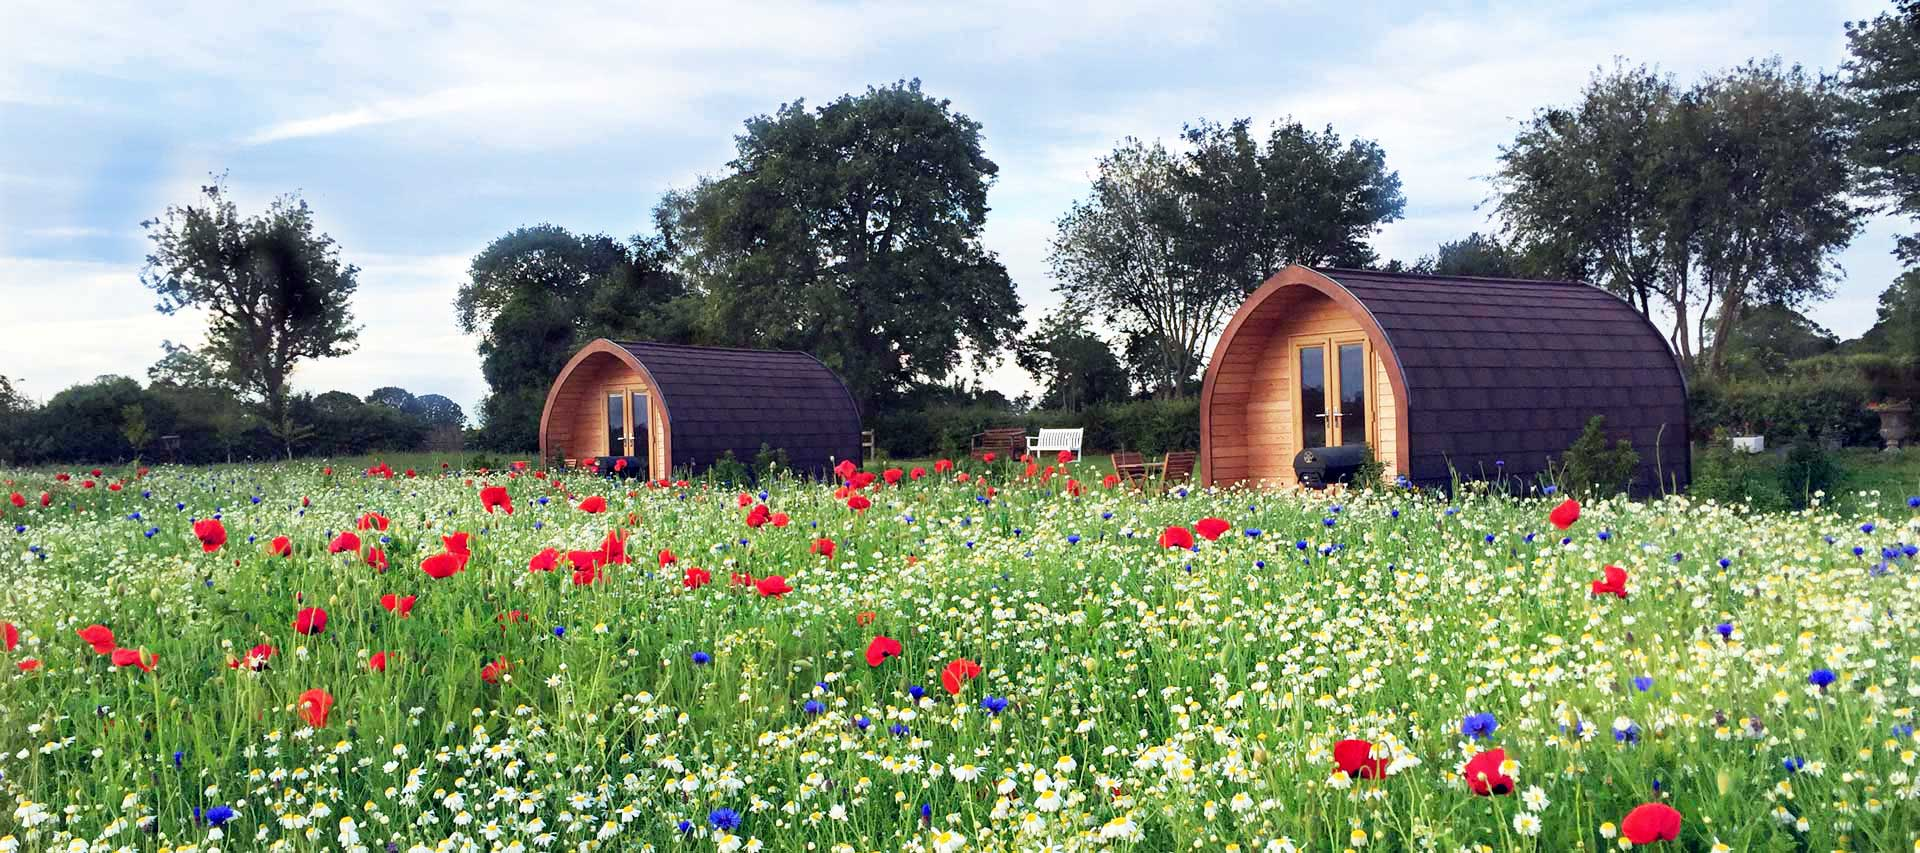 Glamping Pods at Bradley Hall Rural Escapes - Luxurious Glamping Pods on a working farm in Cheshire